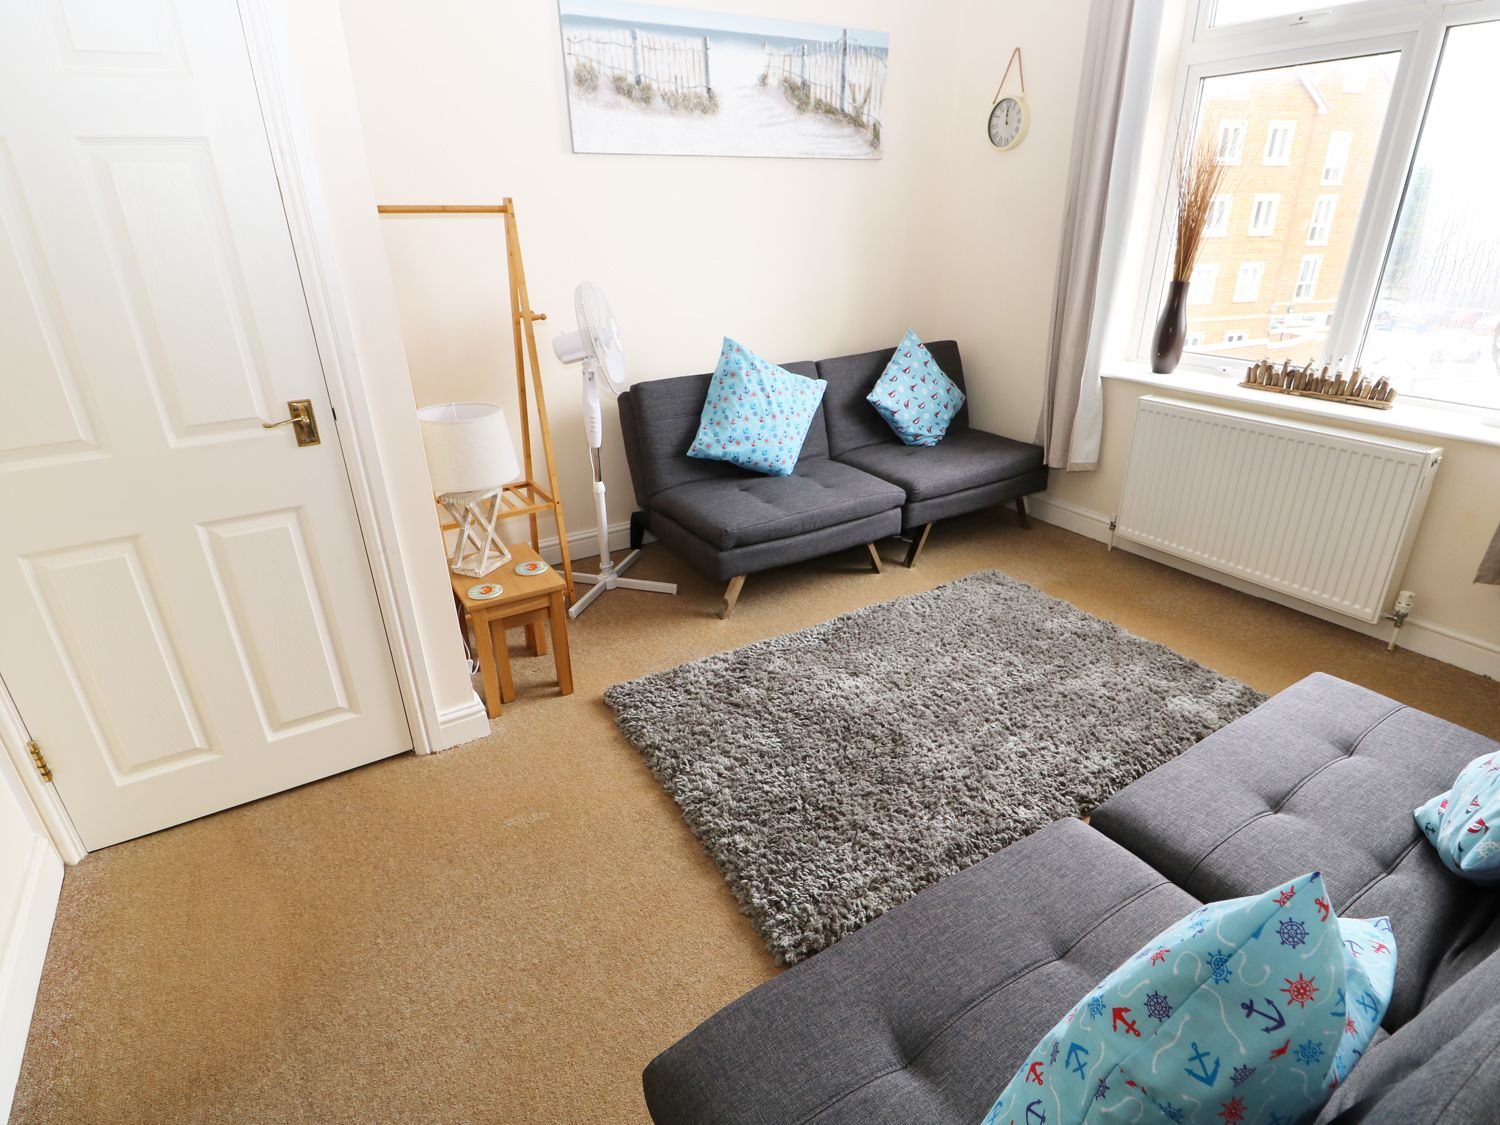 Flat 2, 4 St Edmund's Terrace - Norfolk - 963738 - photo 1